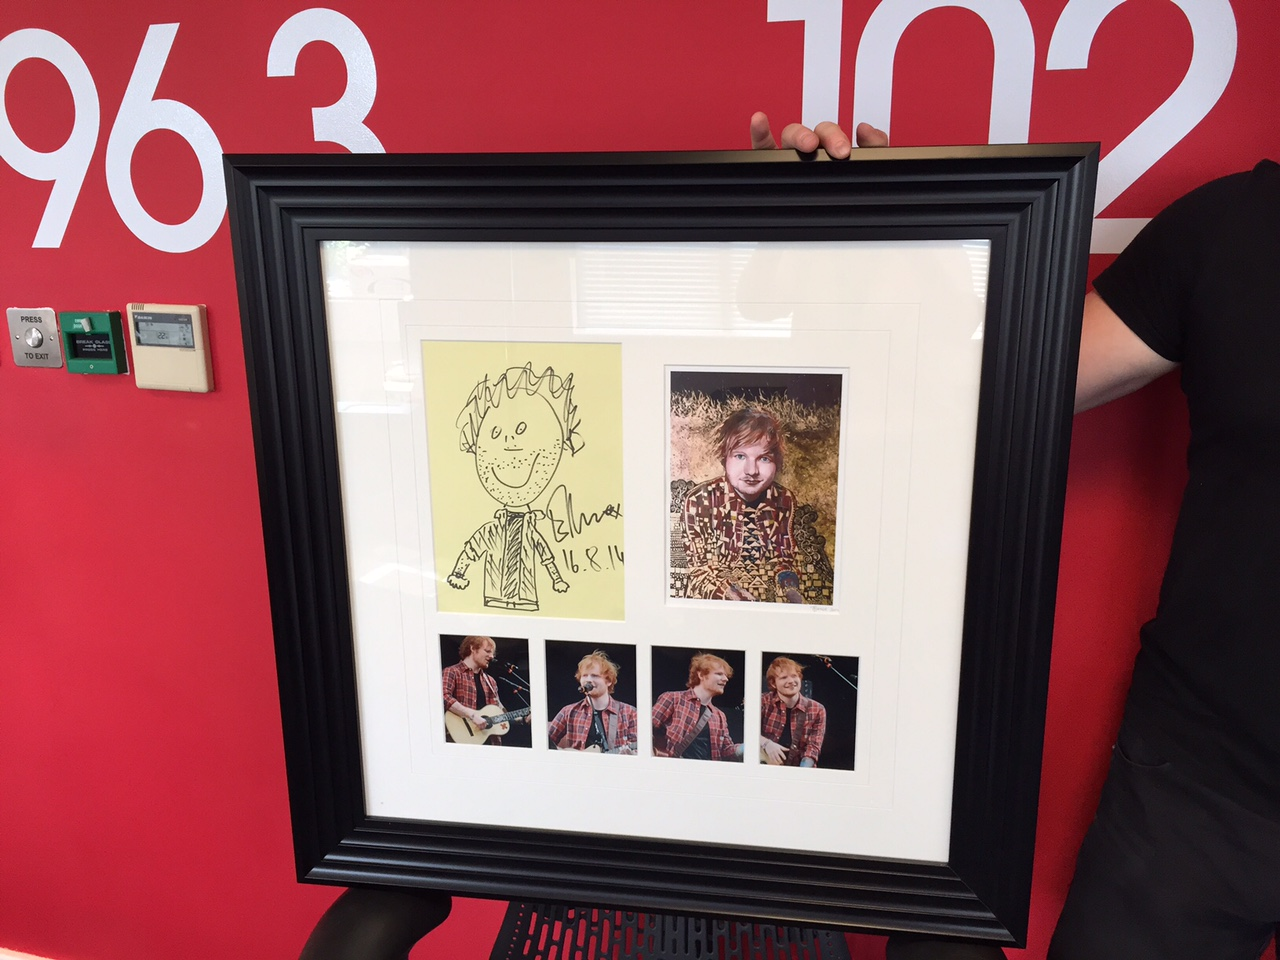 James Wilkinson V-Festival Auction Art